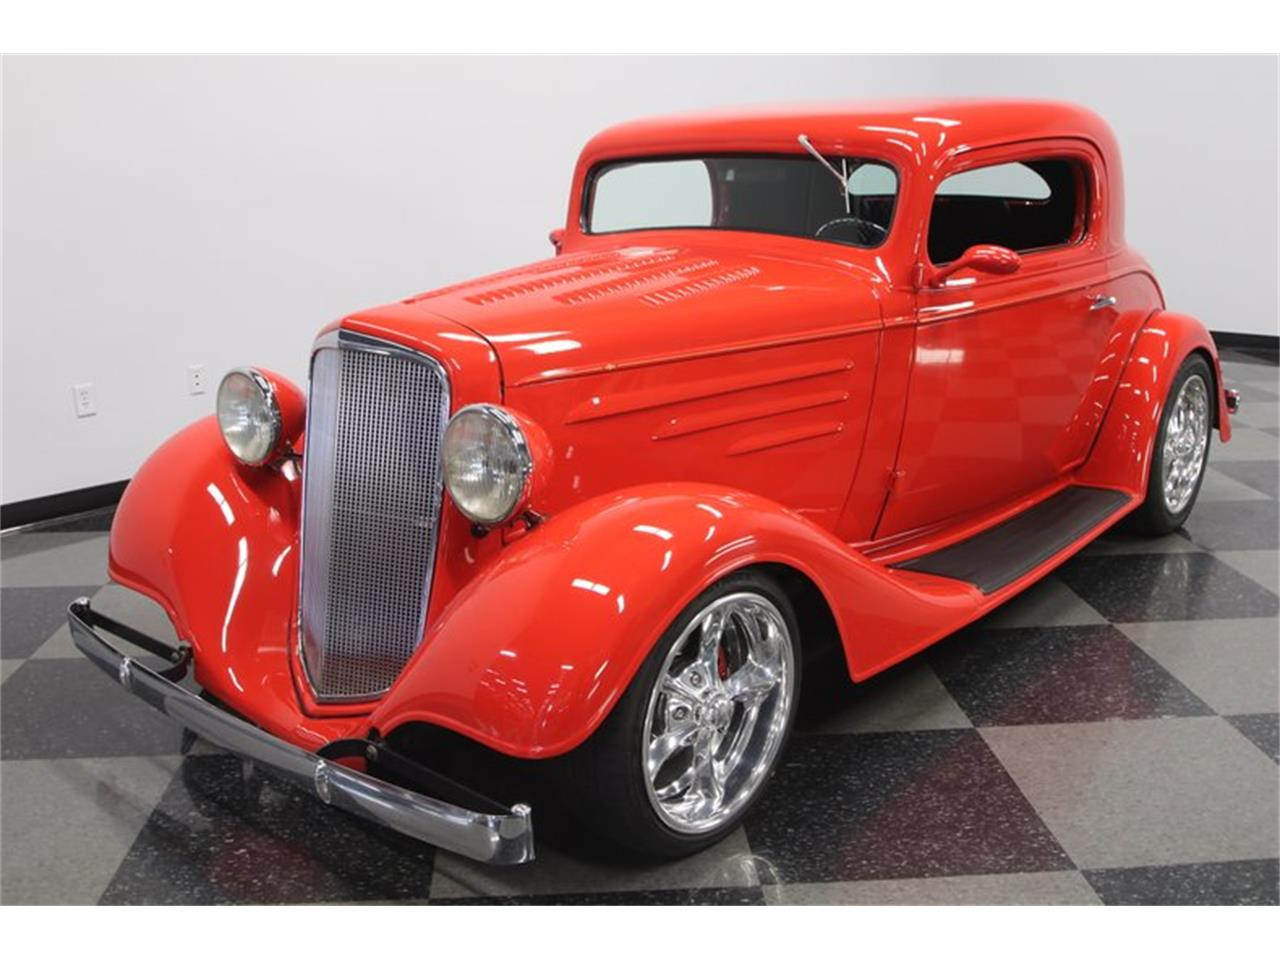 1934 Chevrolet 3-Window Coupe for sale in Lutz, FL – photo 5